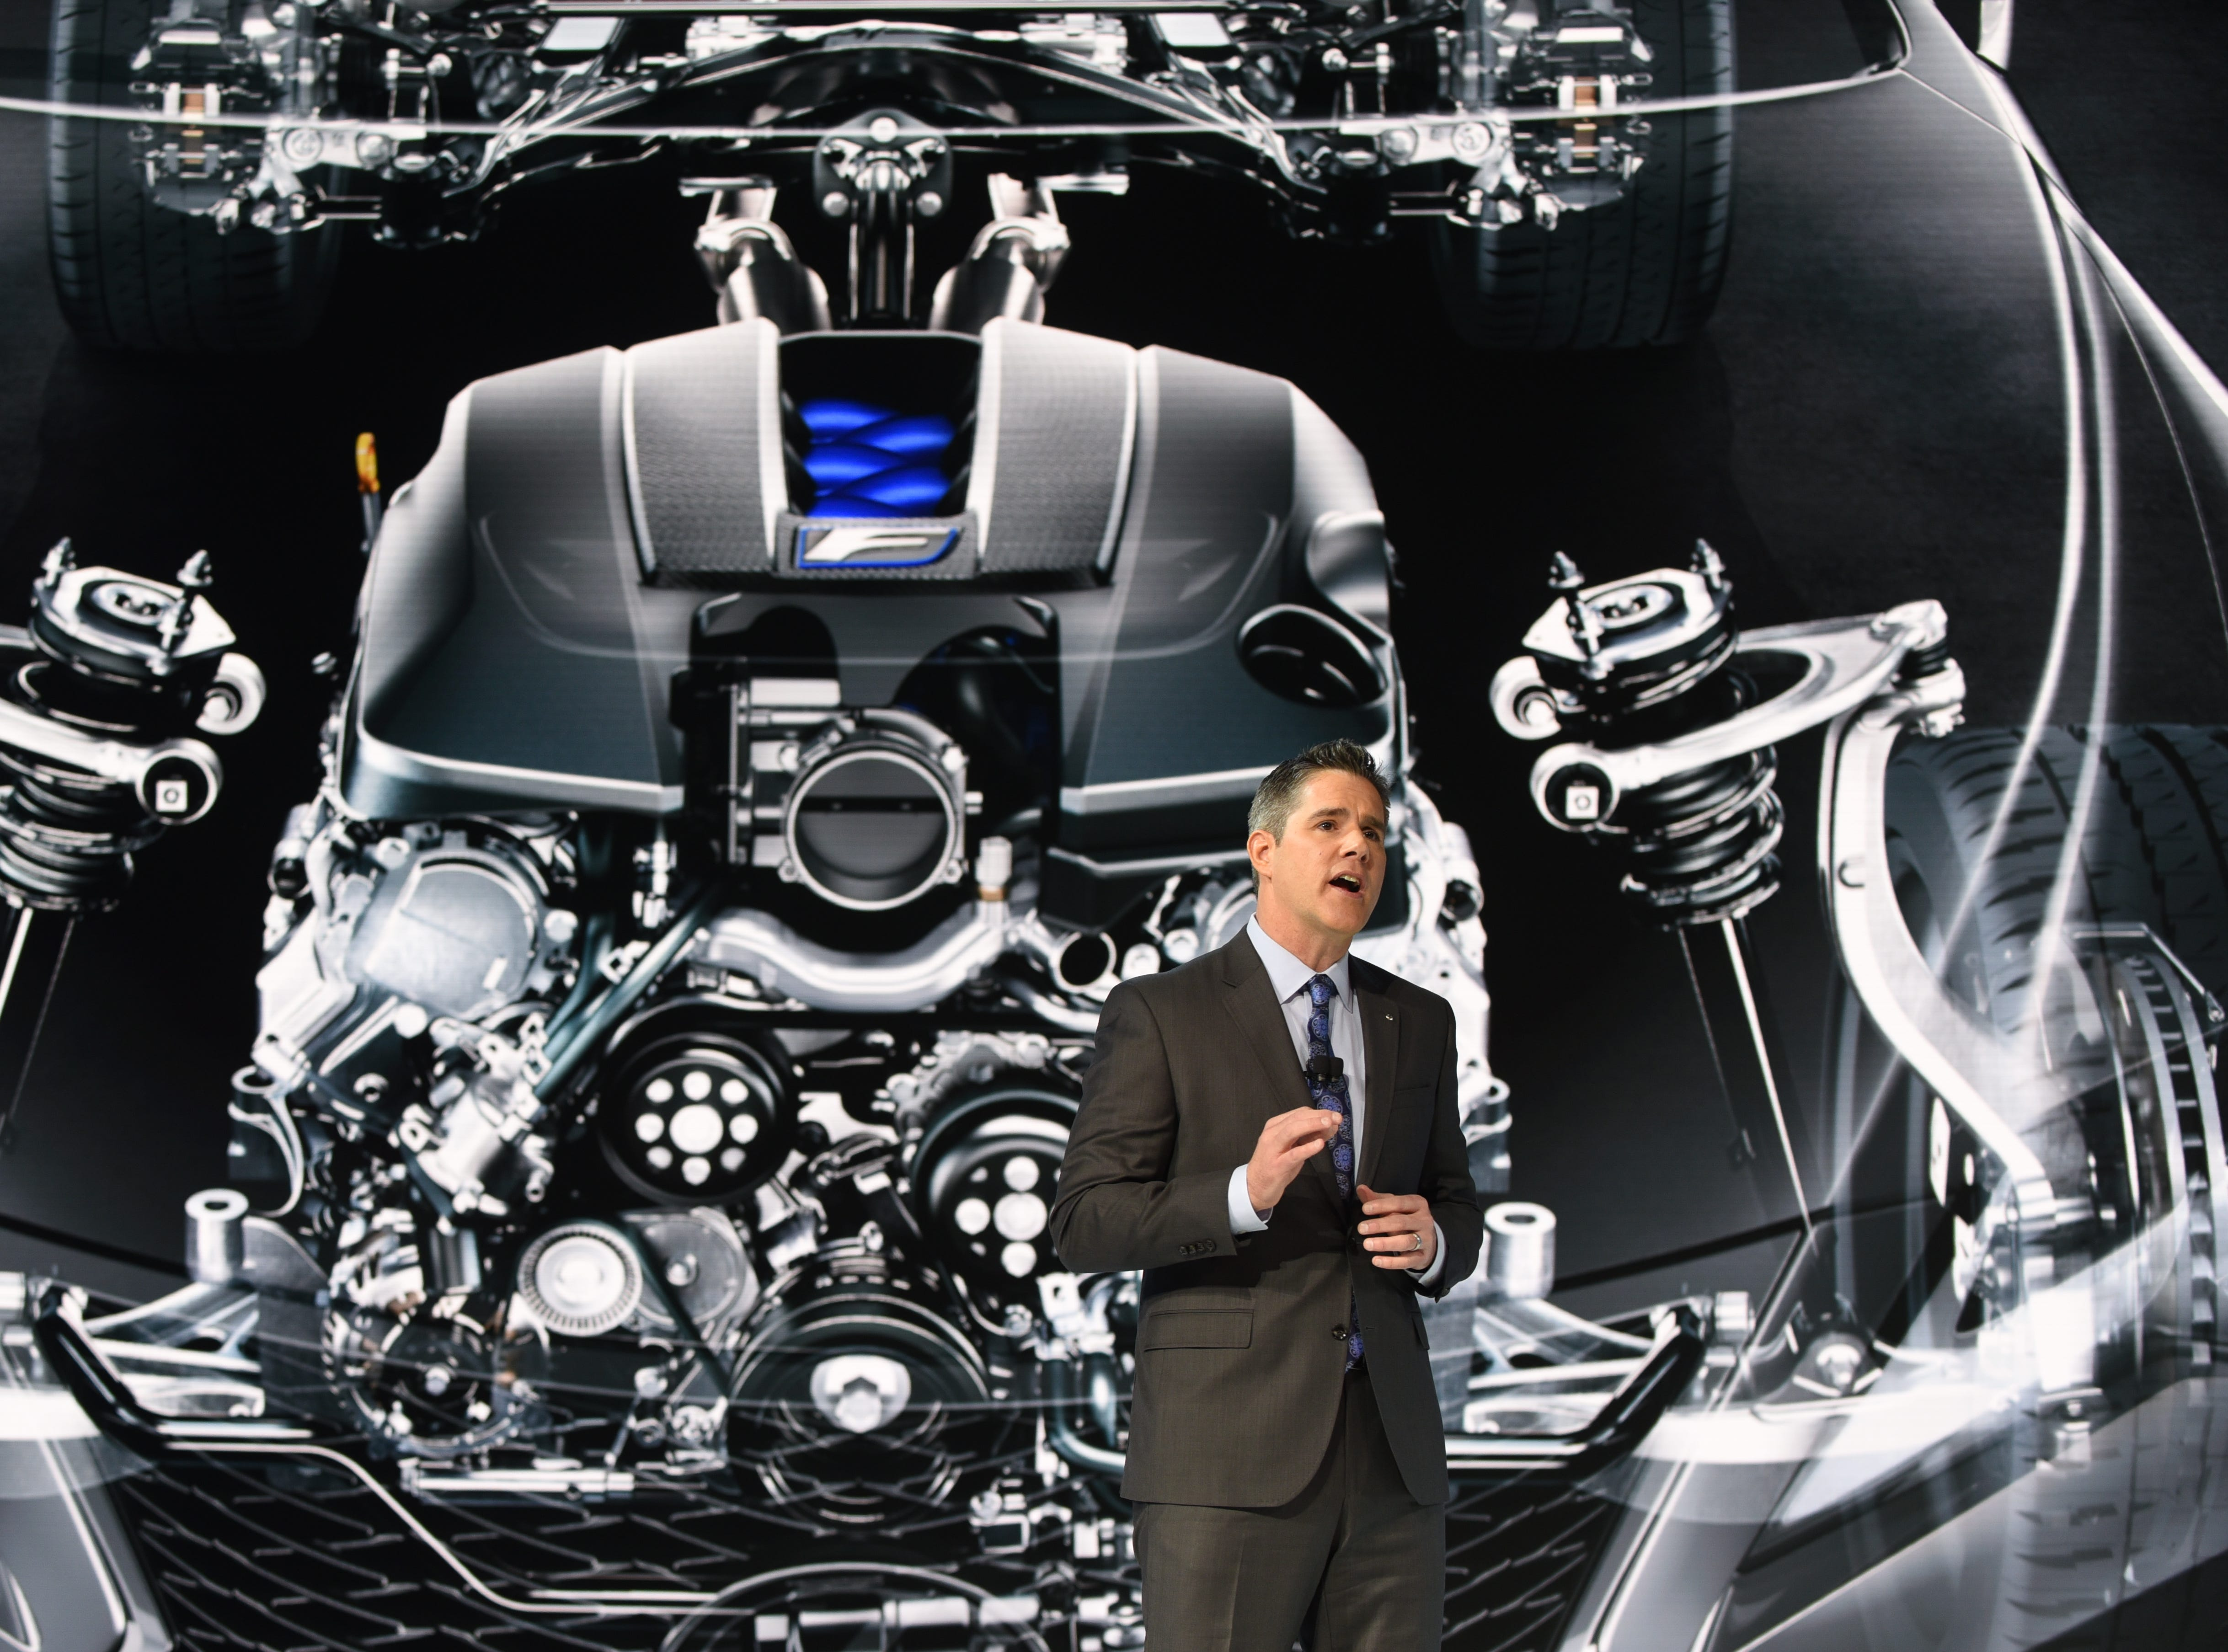 David Christ, group president and general manager, Lexus Division, speaks in front of a video display of the engine of the Lexus RC F Track Edition.